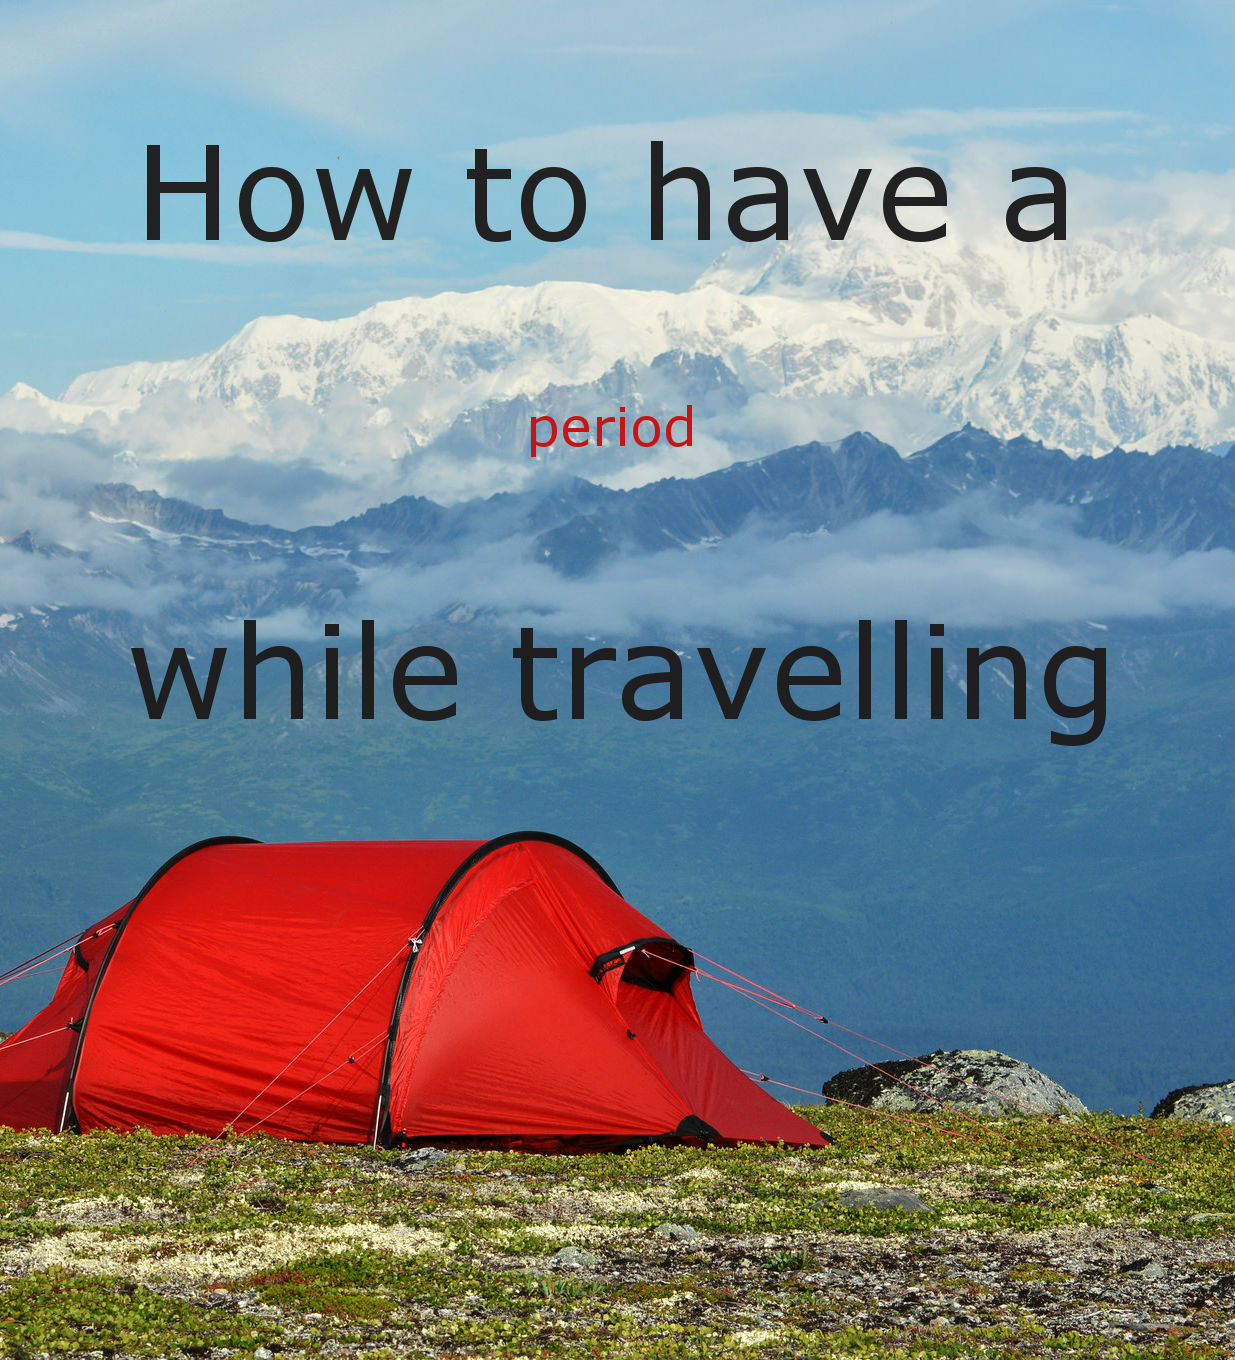 How to have a period while travelling